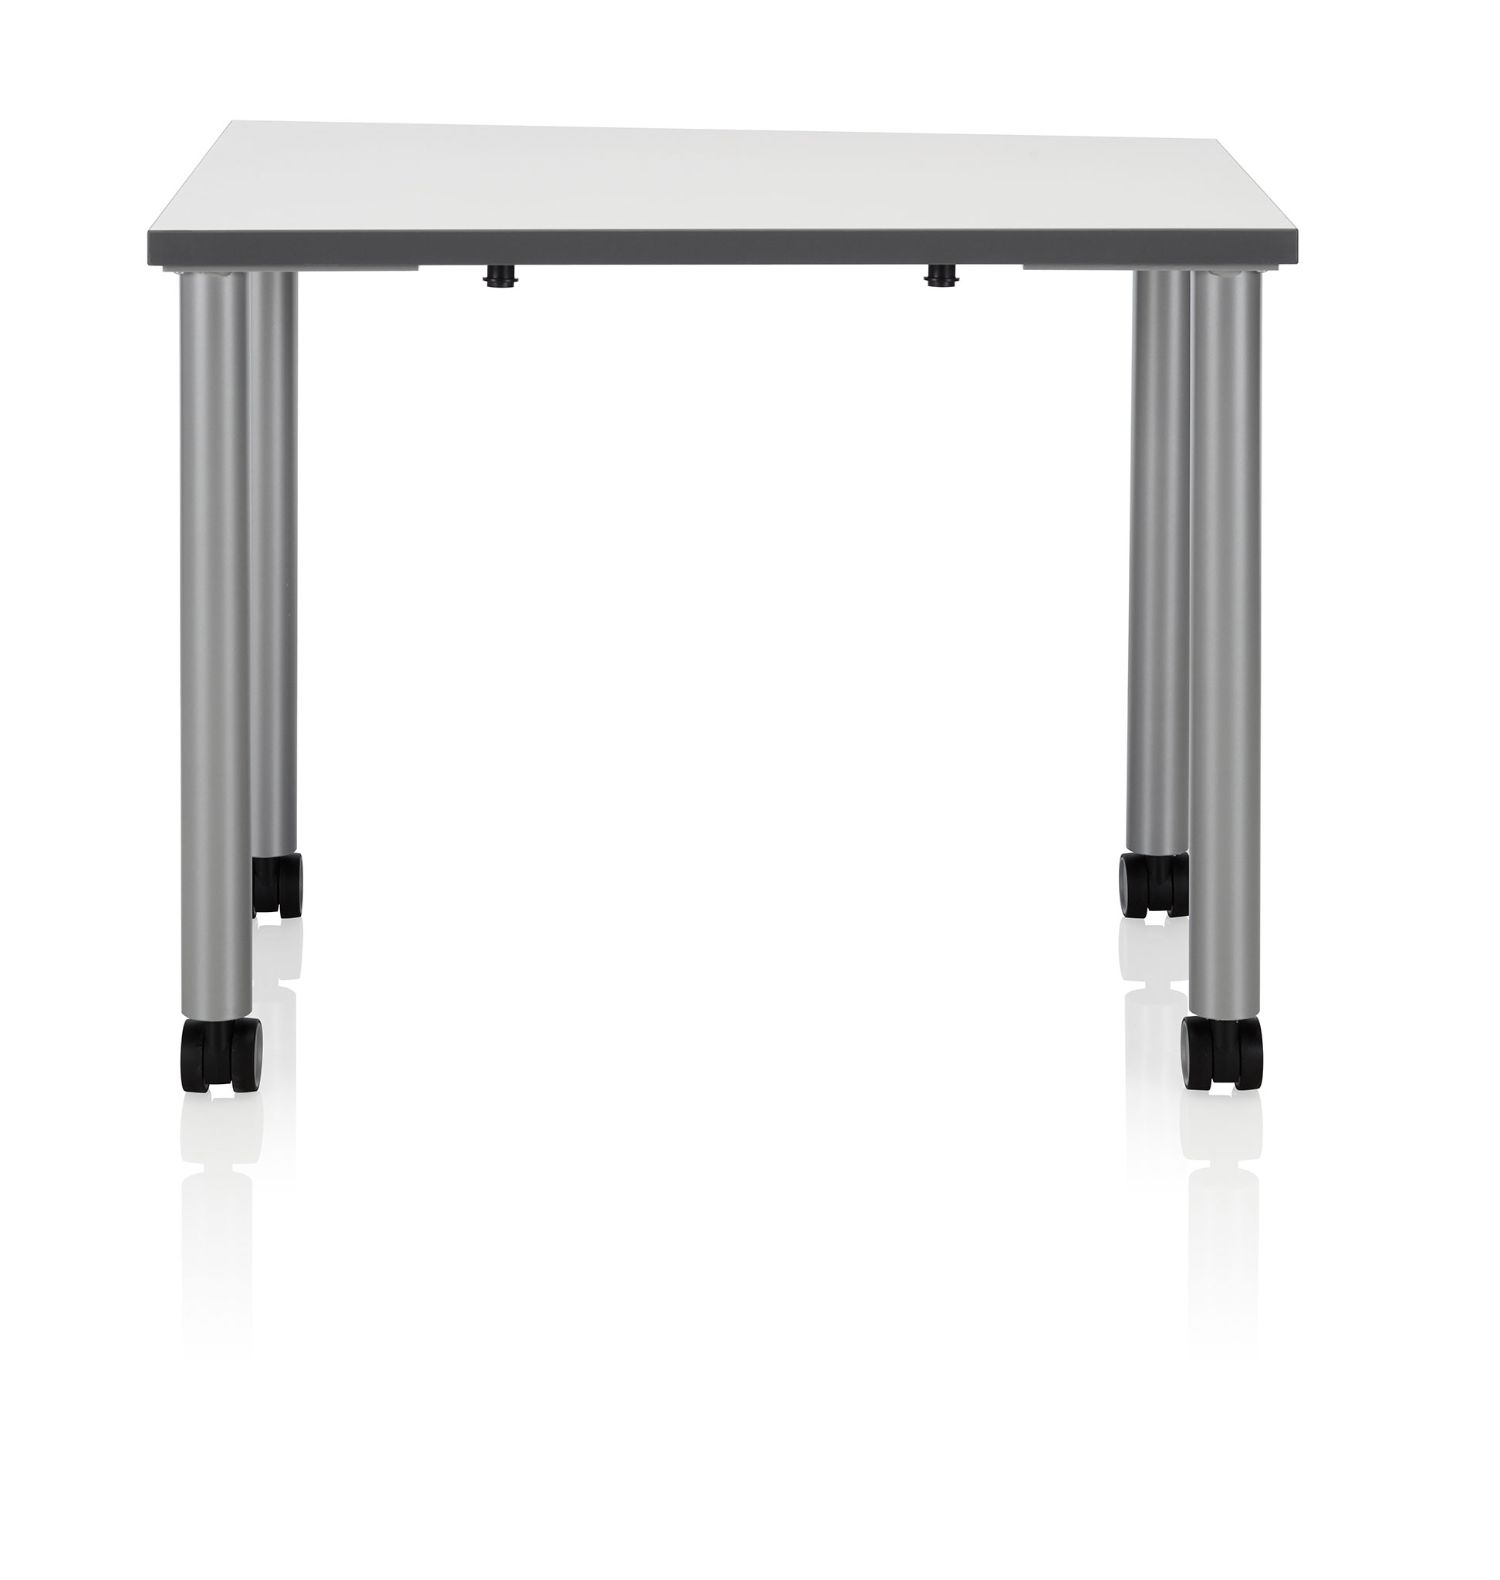 pillar-table_reduction_front_30x36x24